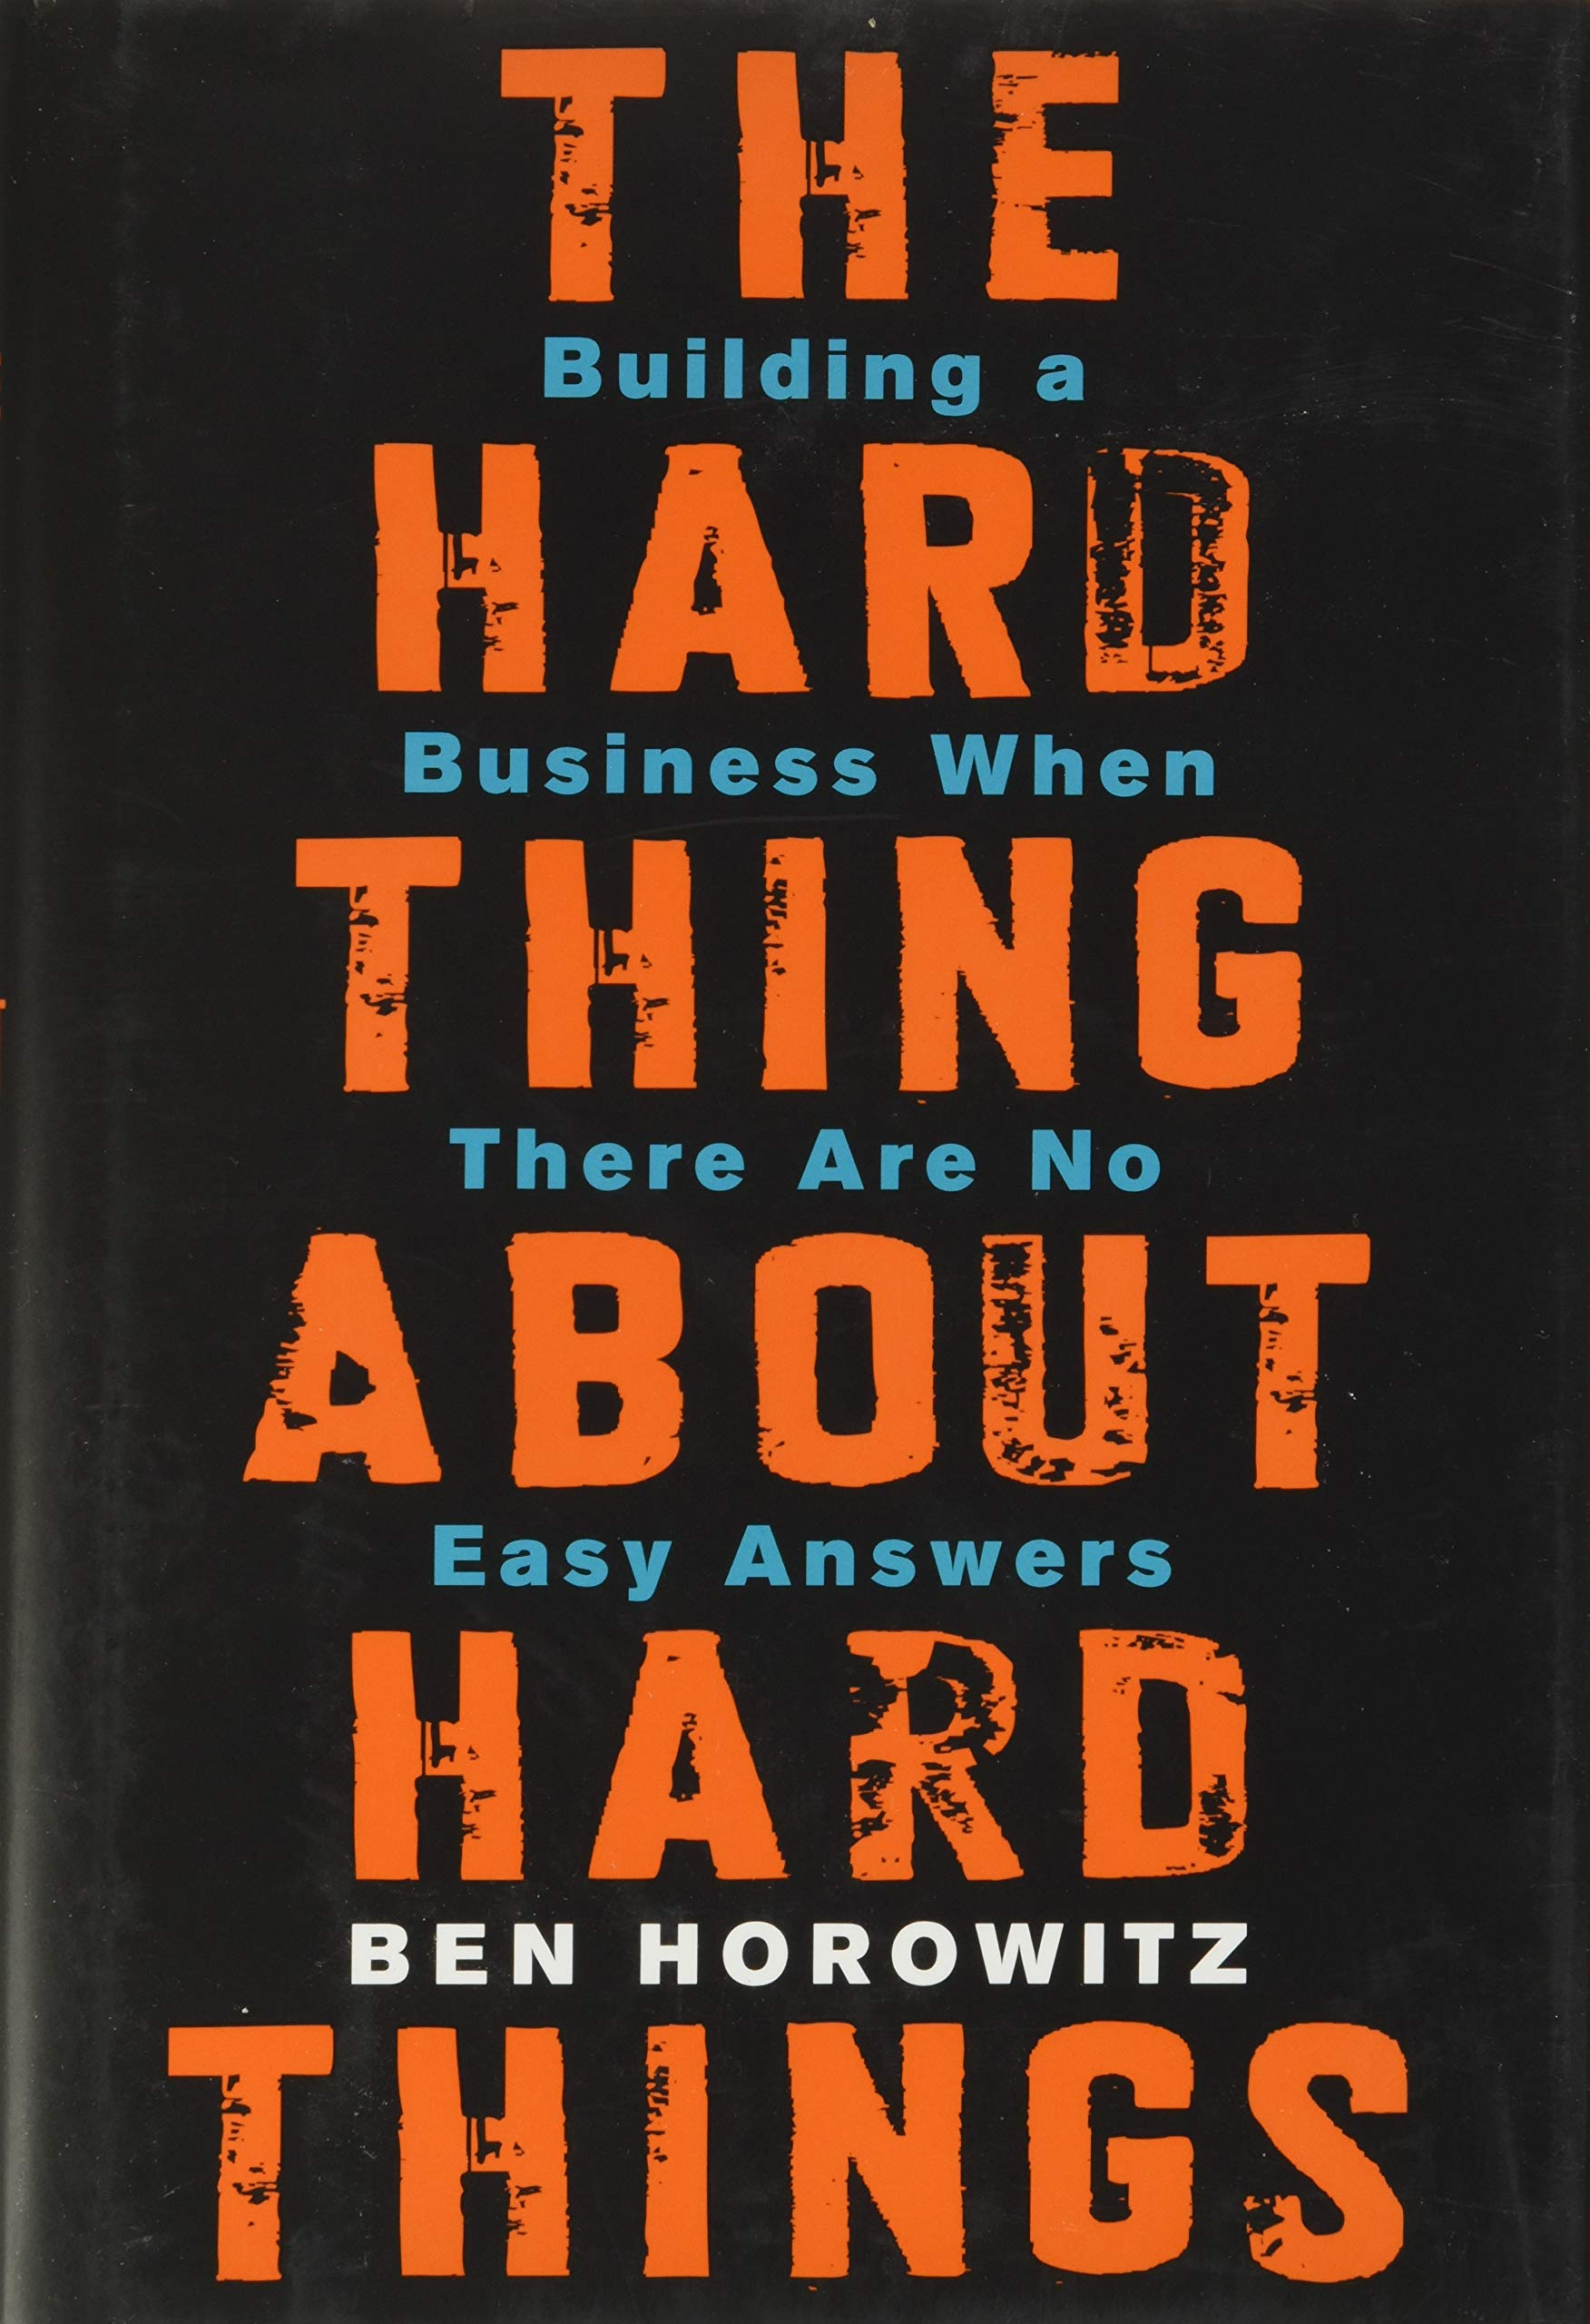 Hard thing about hard things, startup book on company building and the hard times